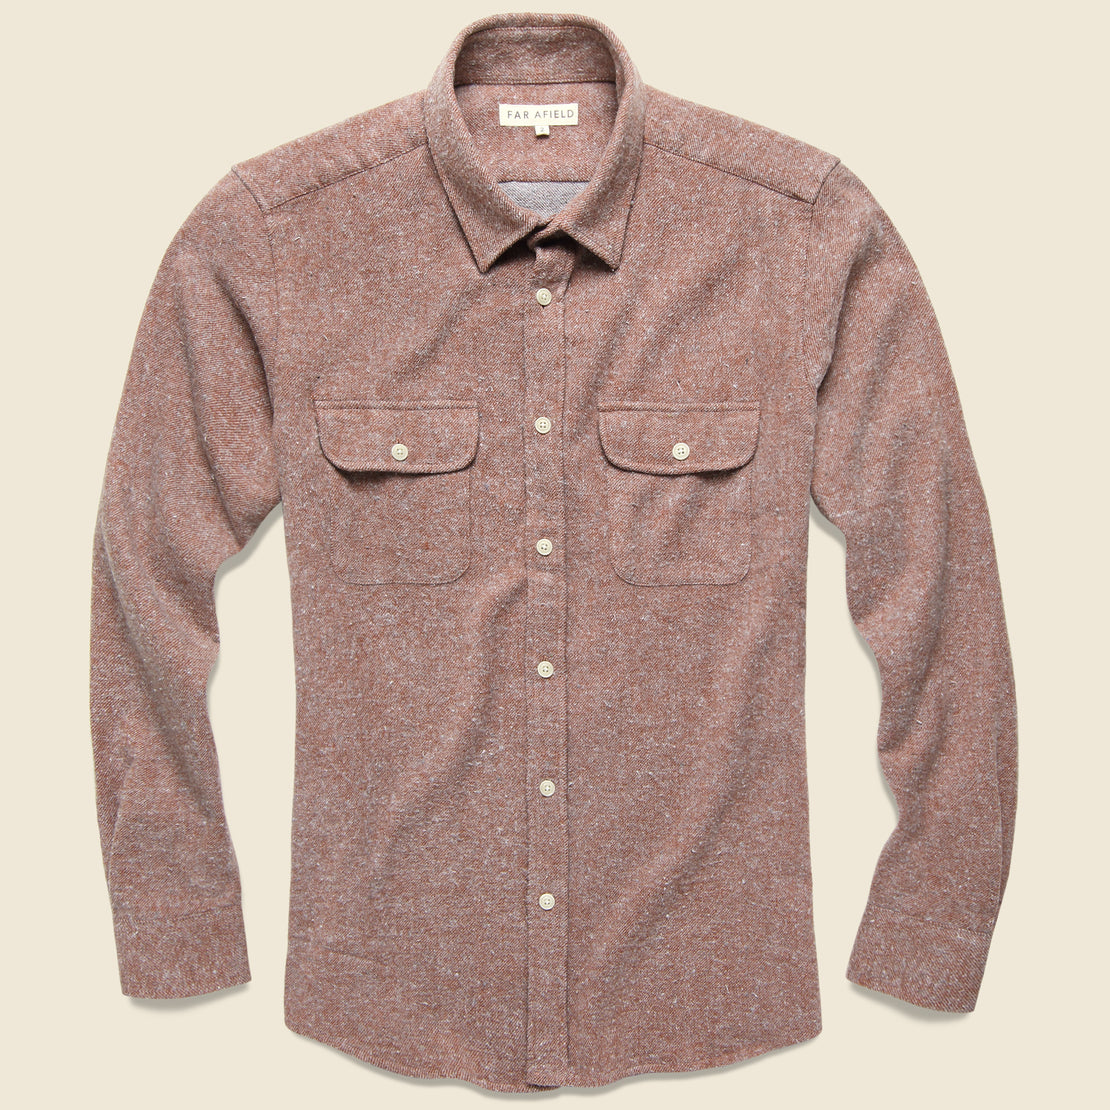 Afield Workwear Flannel - Brick